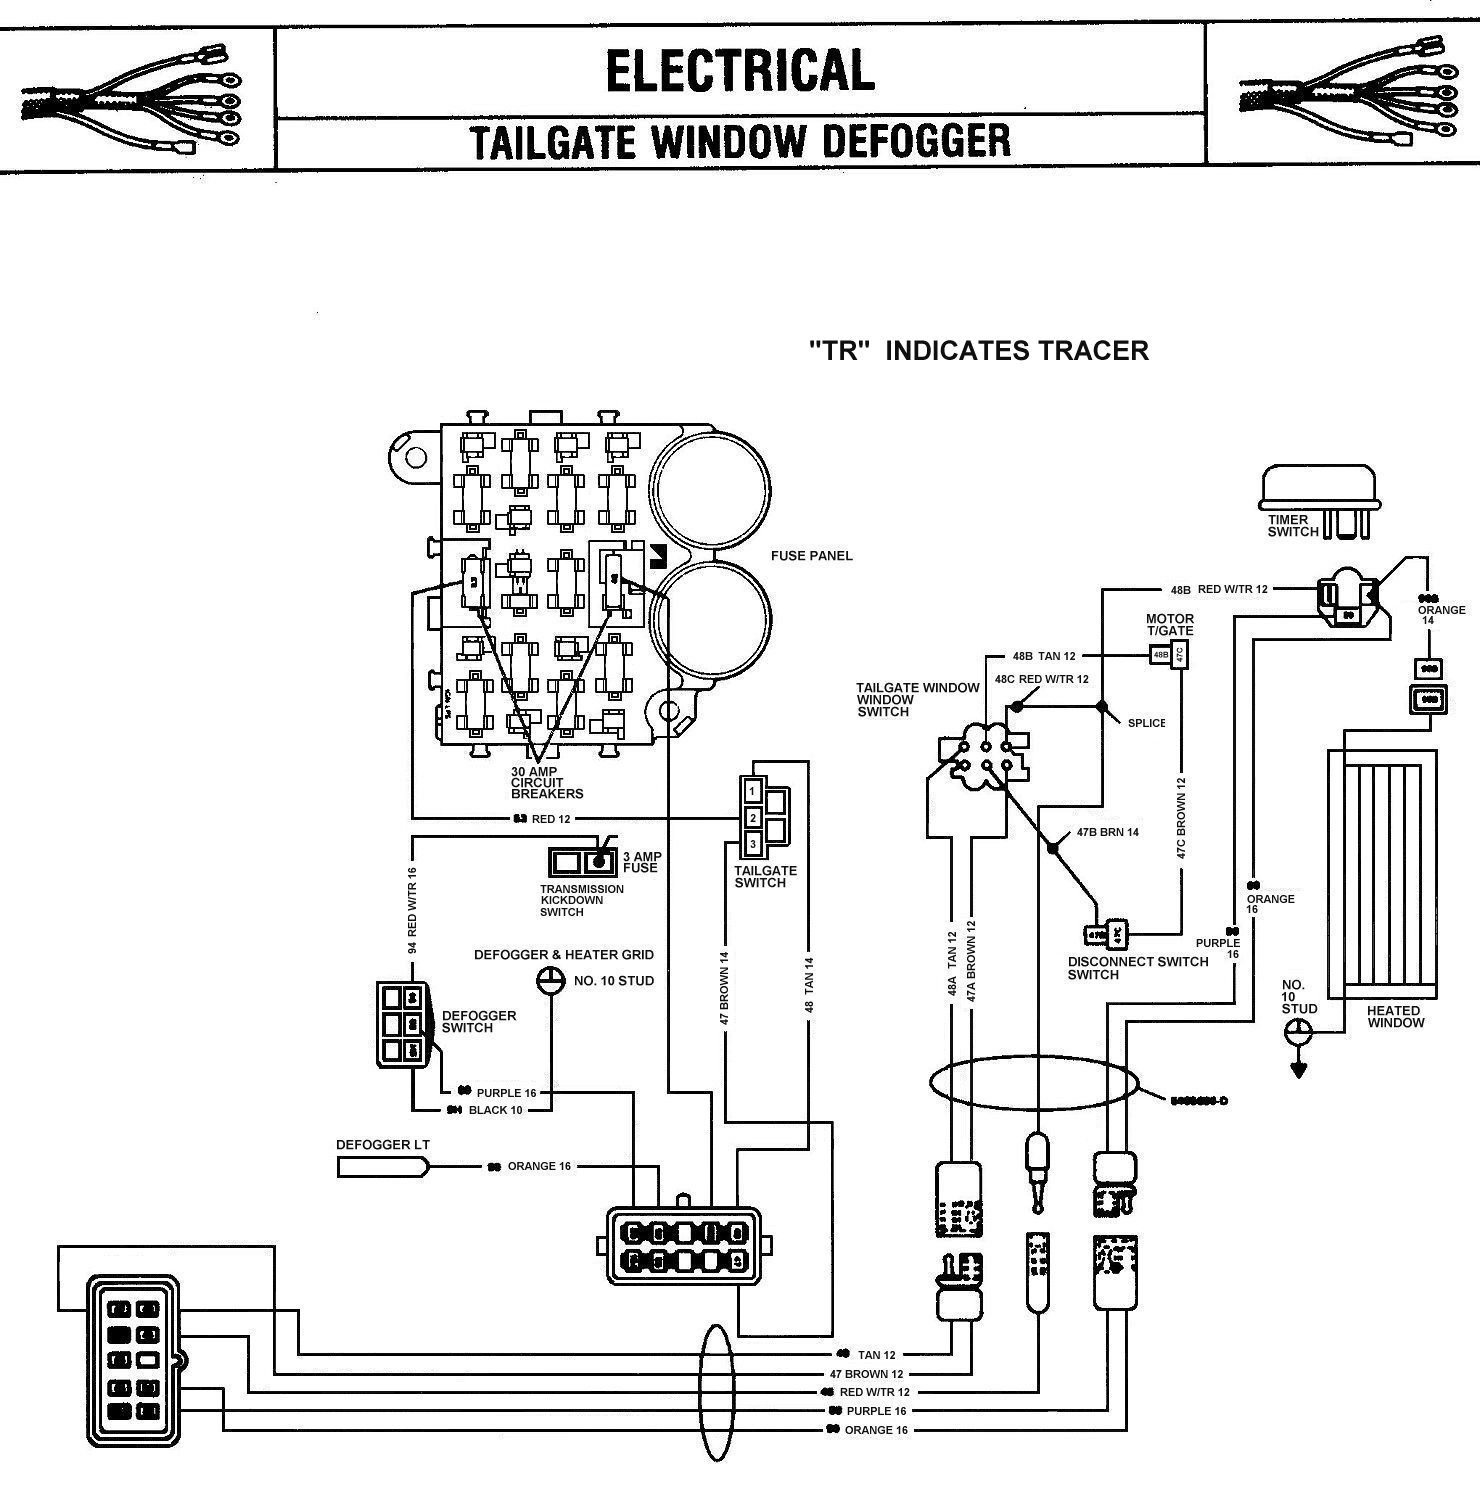 1988 Jeep Grand Wagoneer Wiring Diagram Data Dodge Ram Underhood For 1985